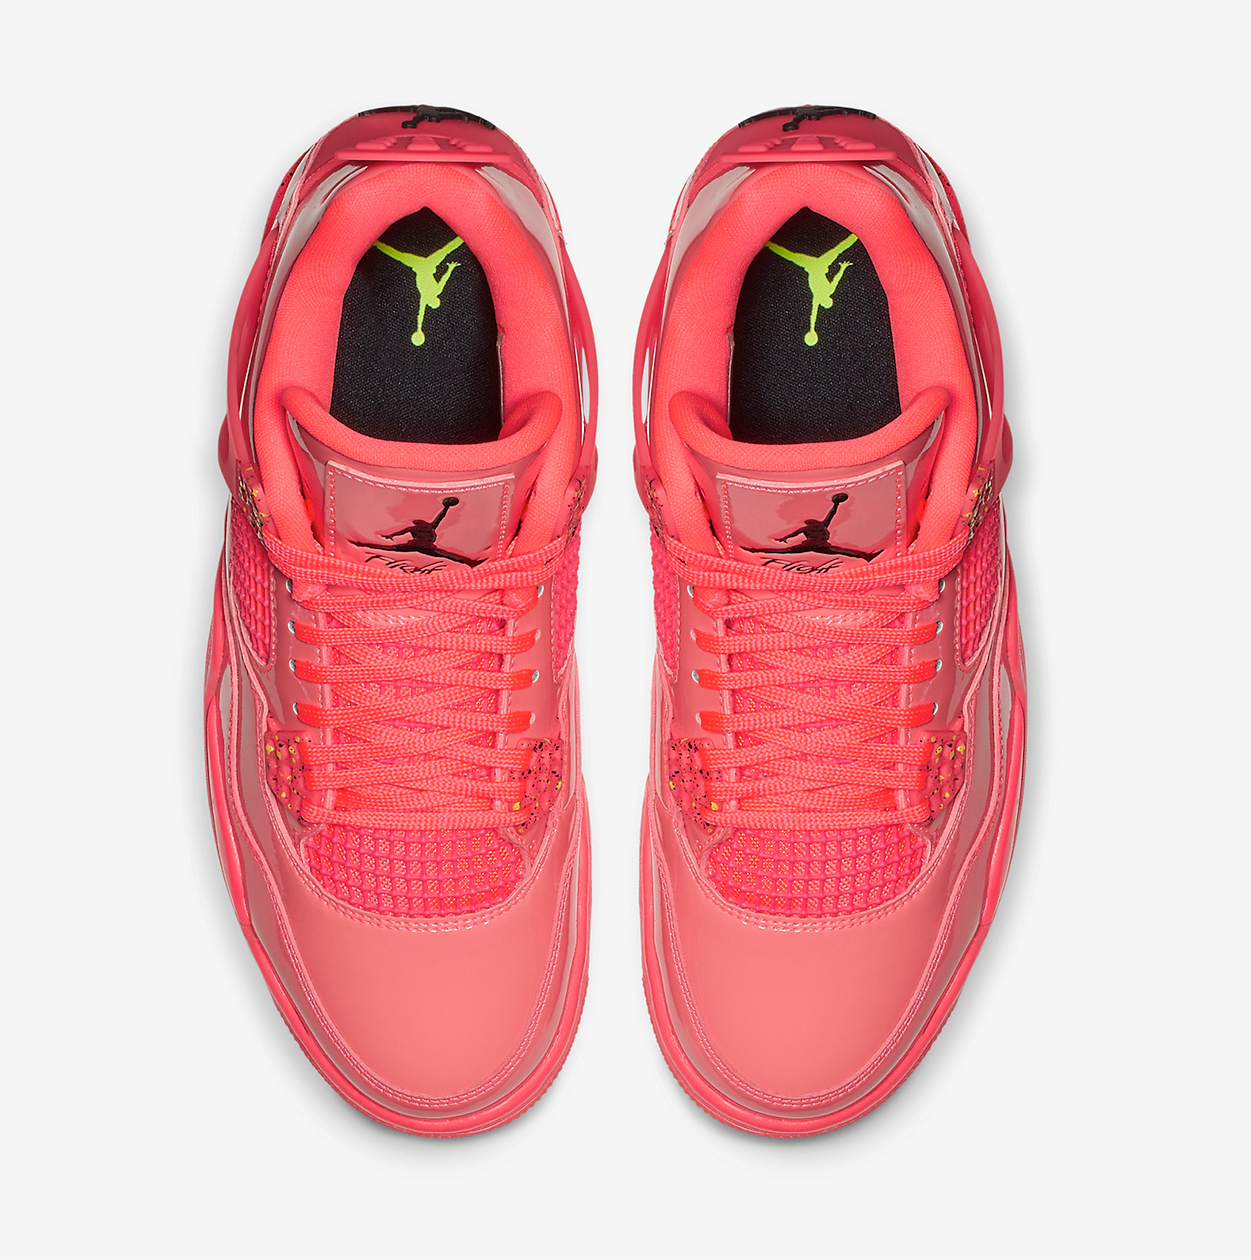 Air Jordan 4 NRG Hot Punch Black Volt AQ9128-600 Release Date Price